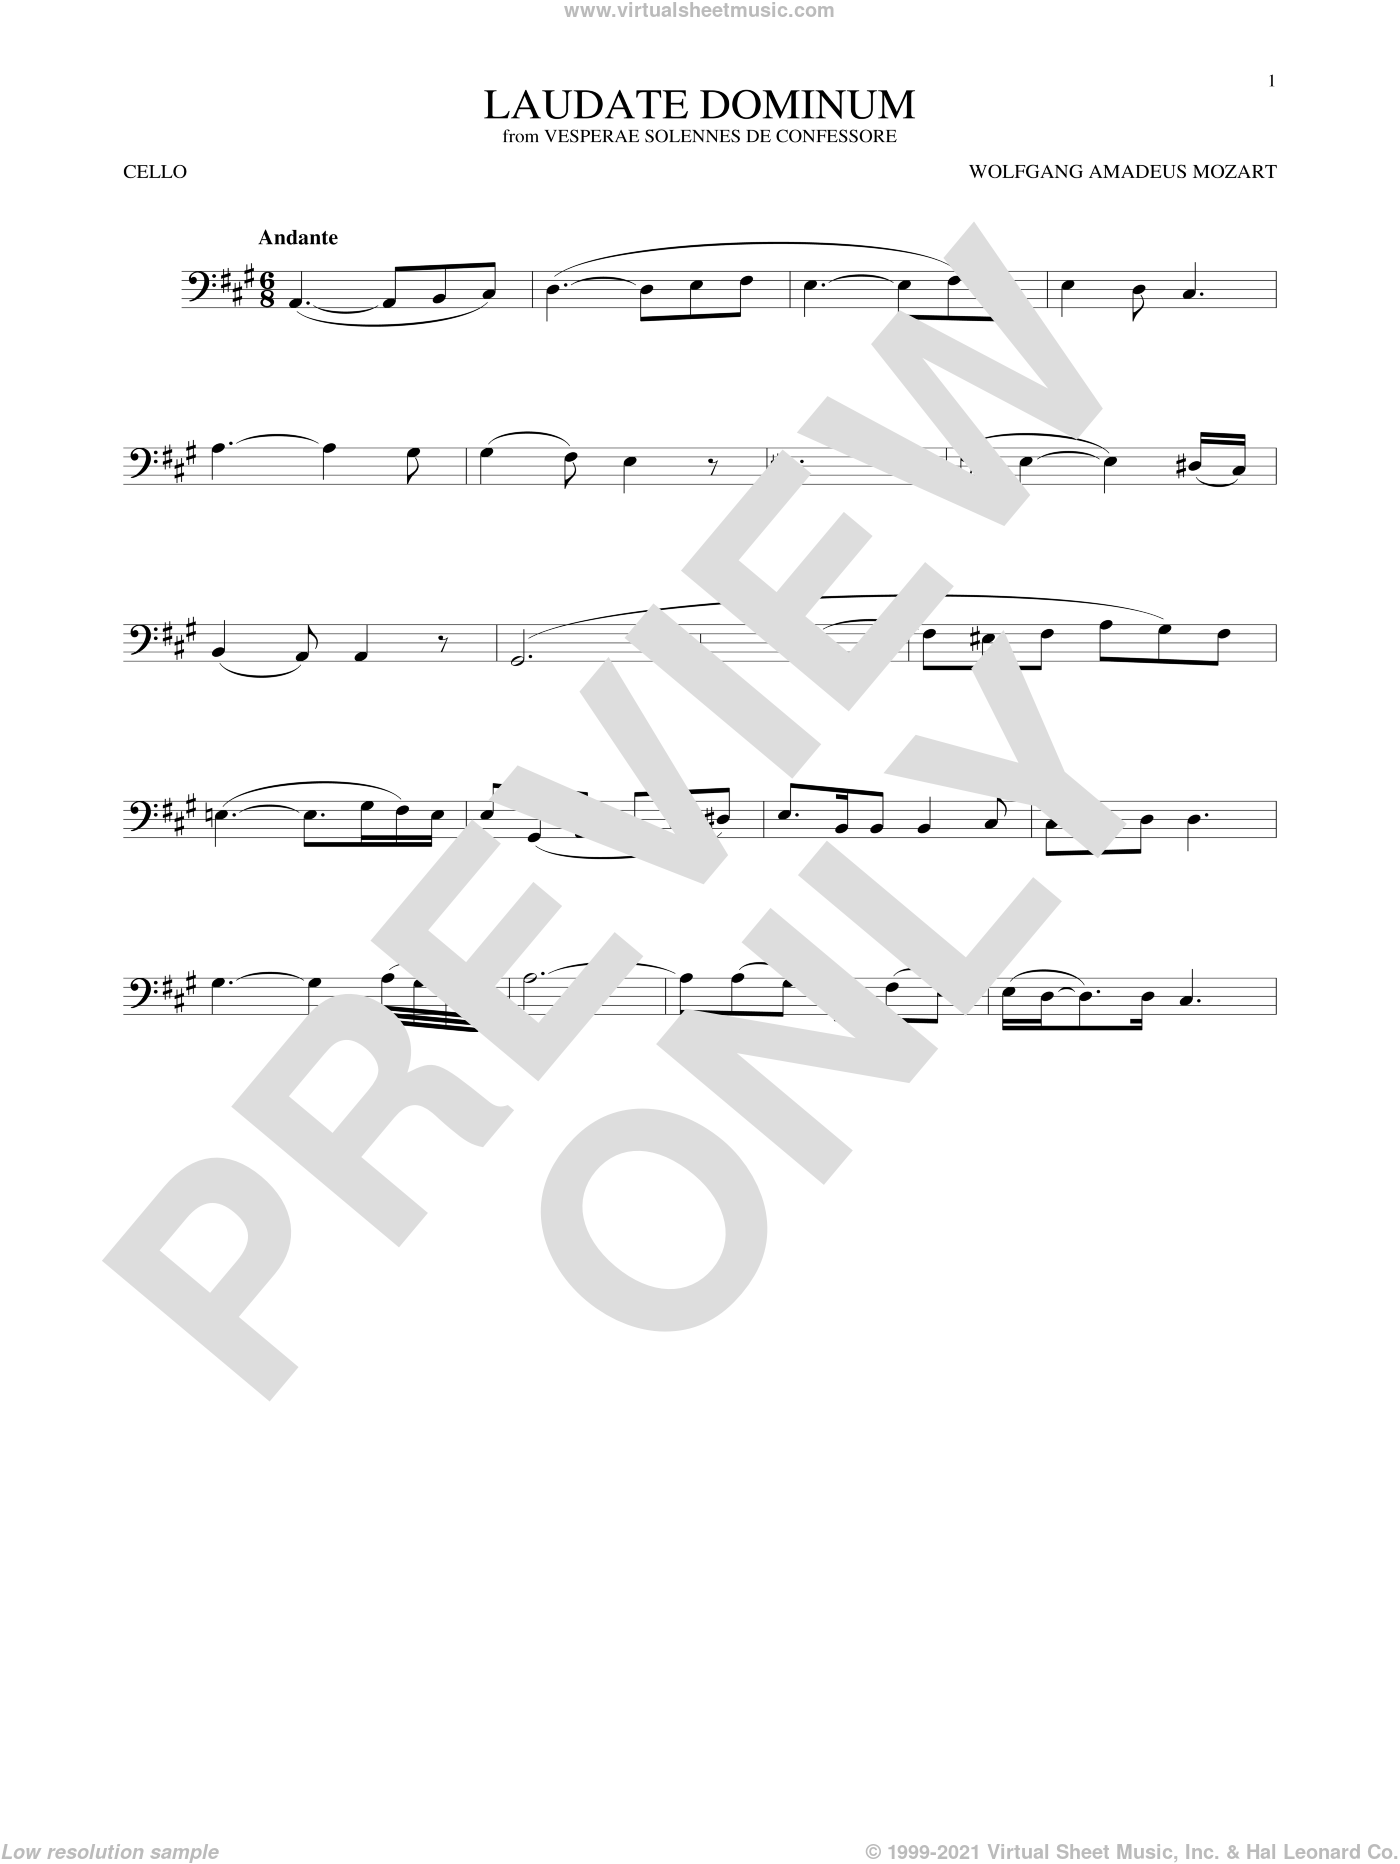 Laudate Dominum sheet music for cello solo by Wolfgang Amadeus Mozart, classical score, intermediate skill level